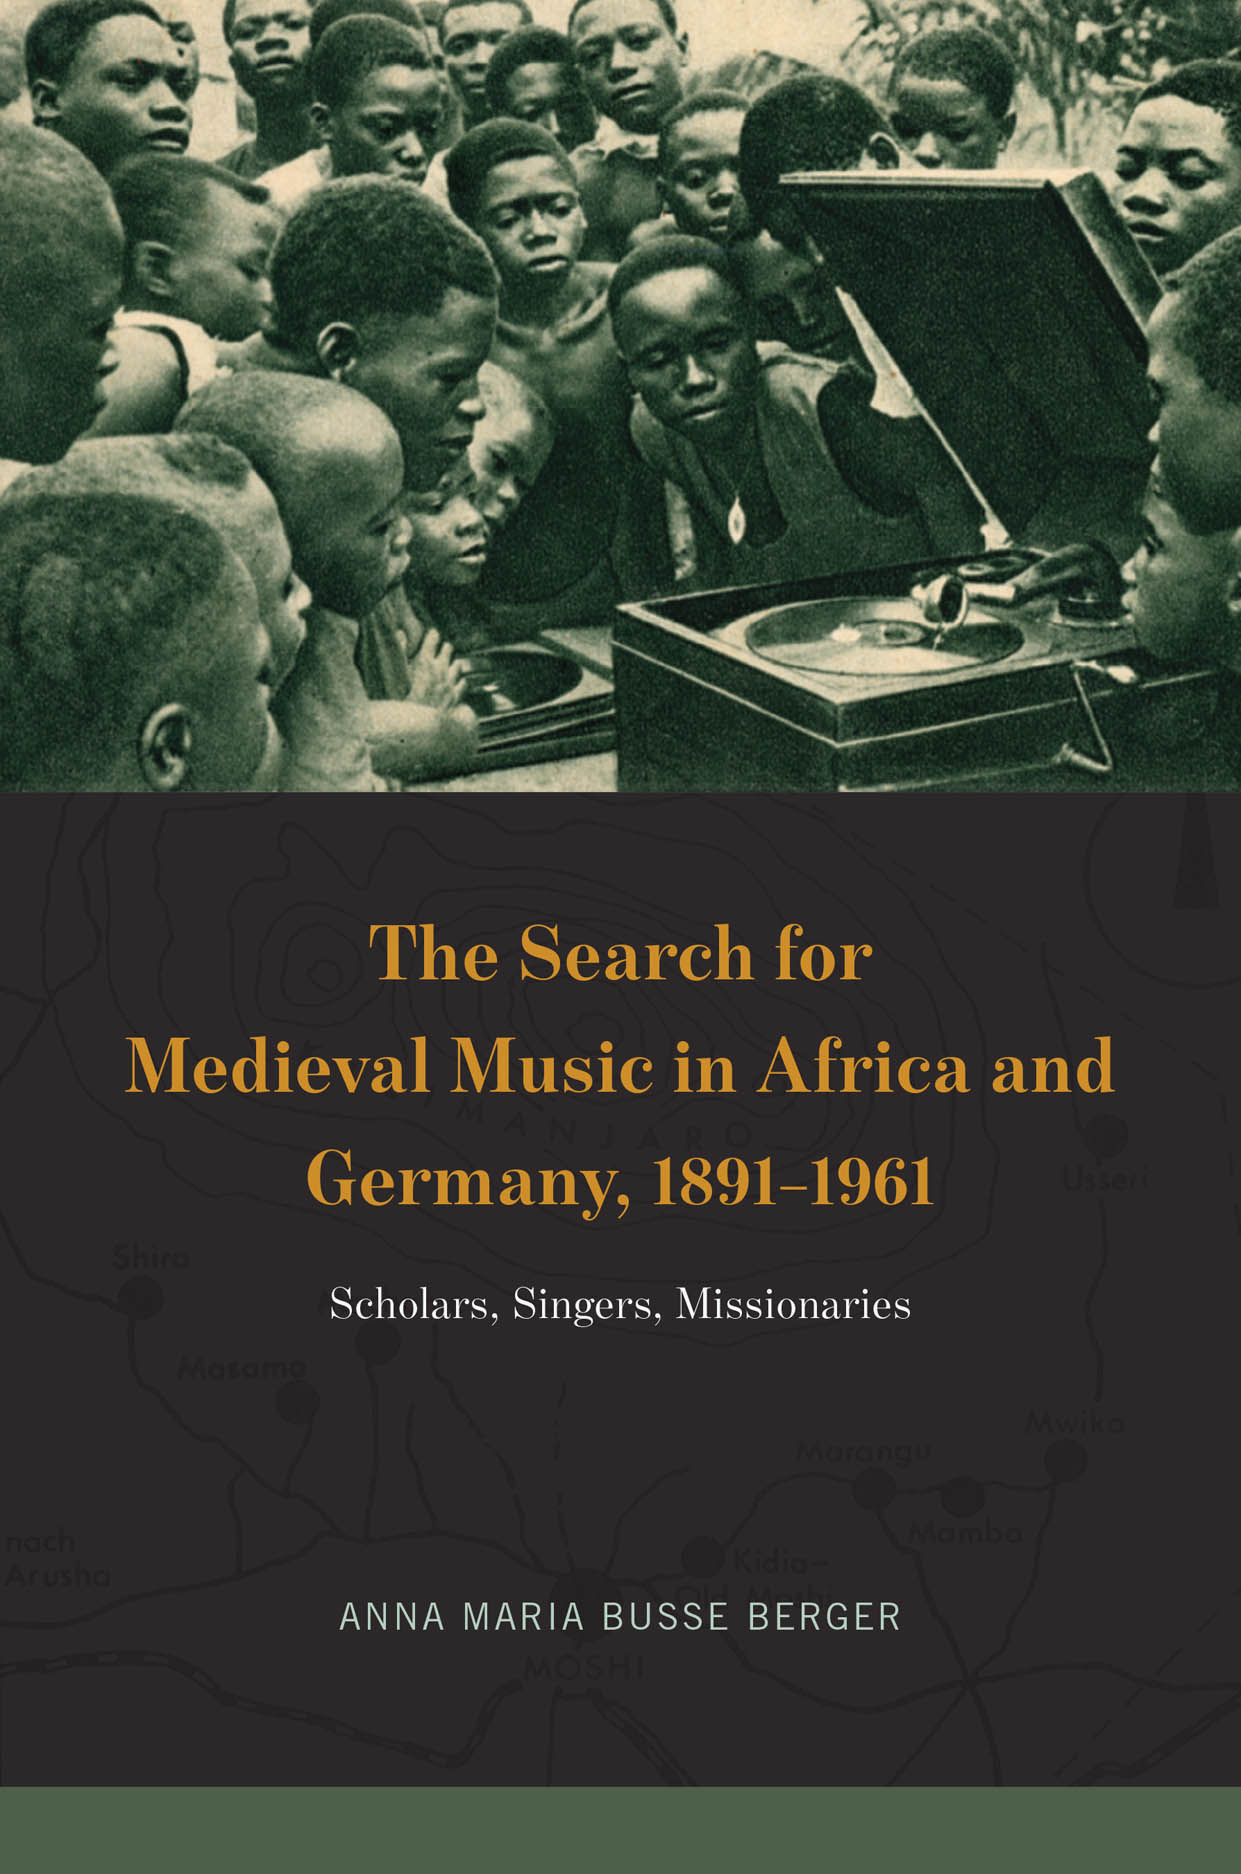 The Search for Medieval Music in Africa and Germany, 1891-1961: Scholars, Singers, Missionaries